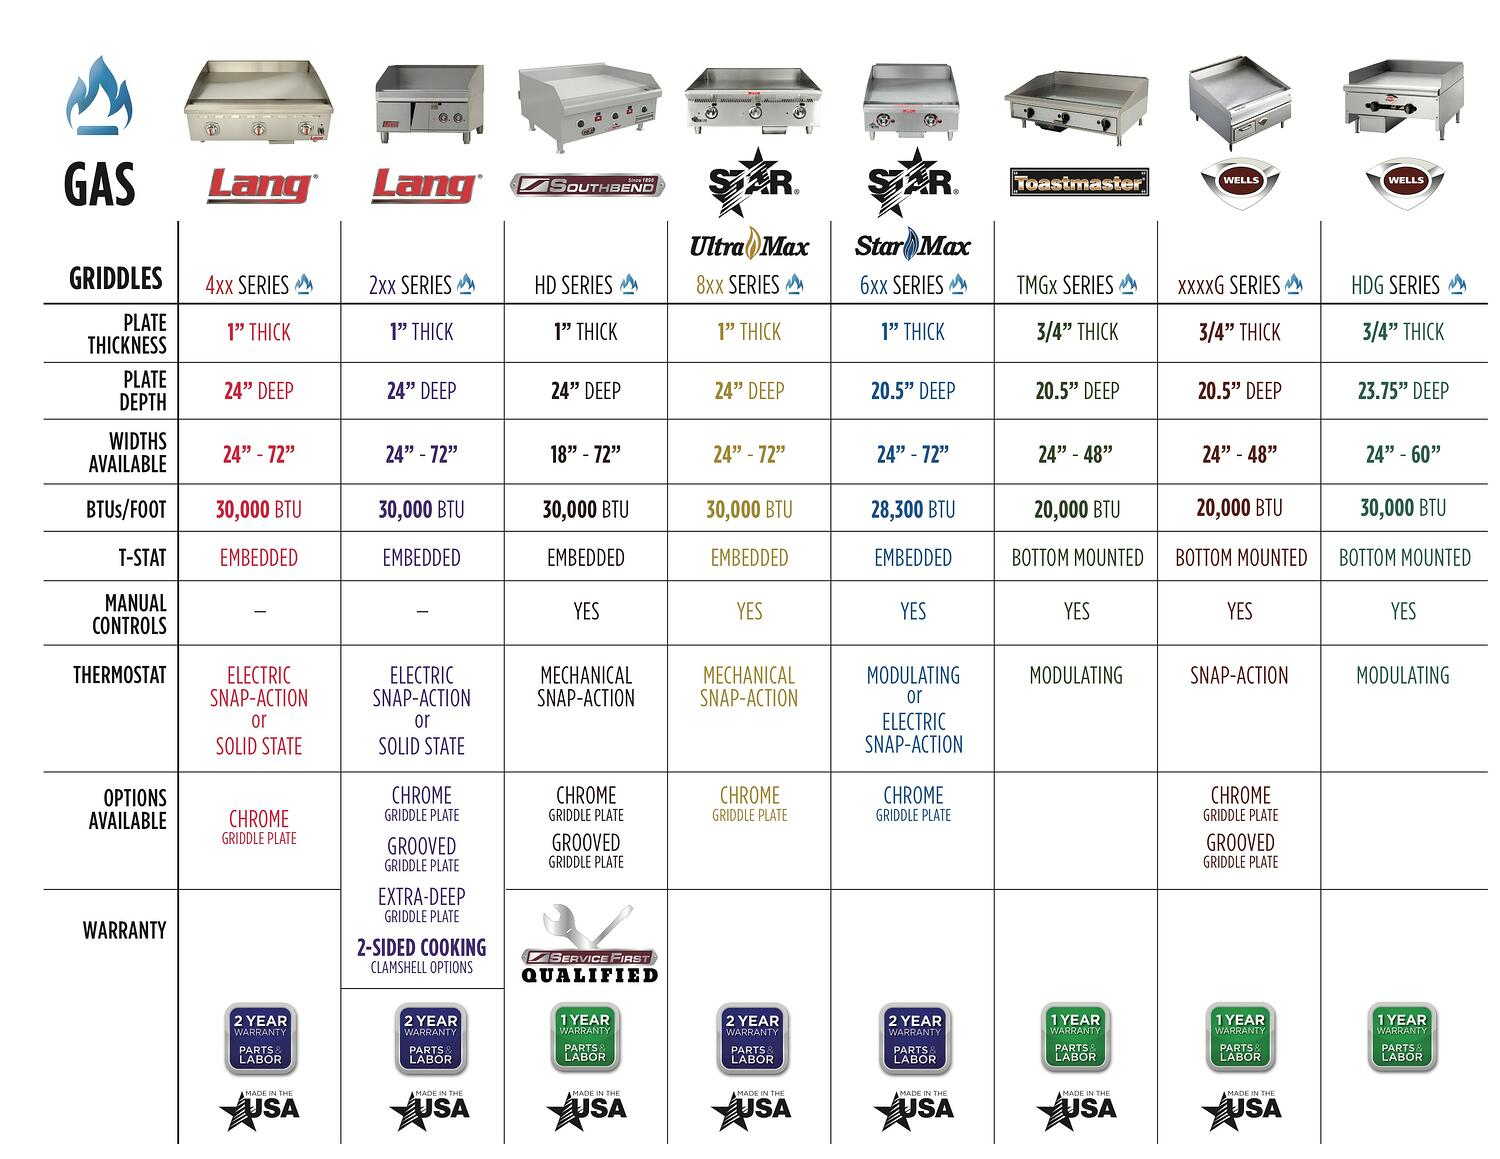 Gas Griddle Comparison Chart